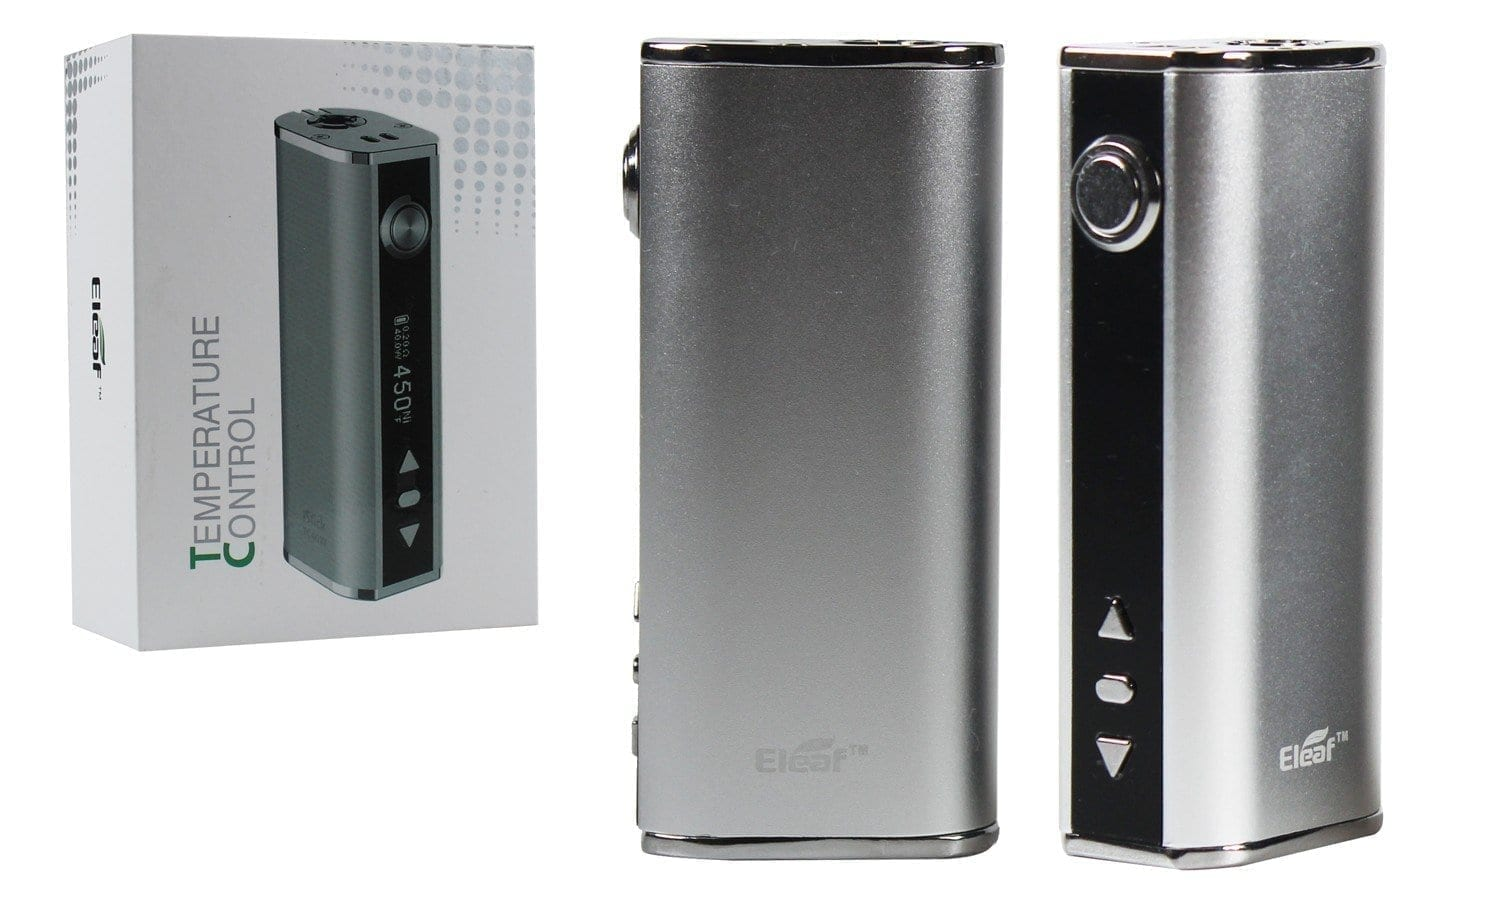 Eleaf iStick 40w - Silver 2600mah Battery